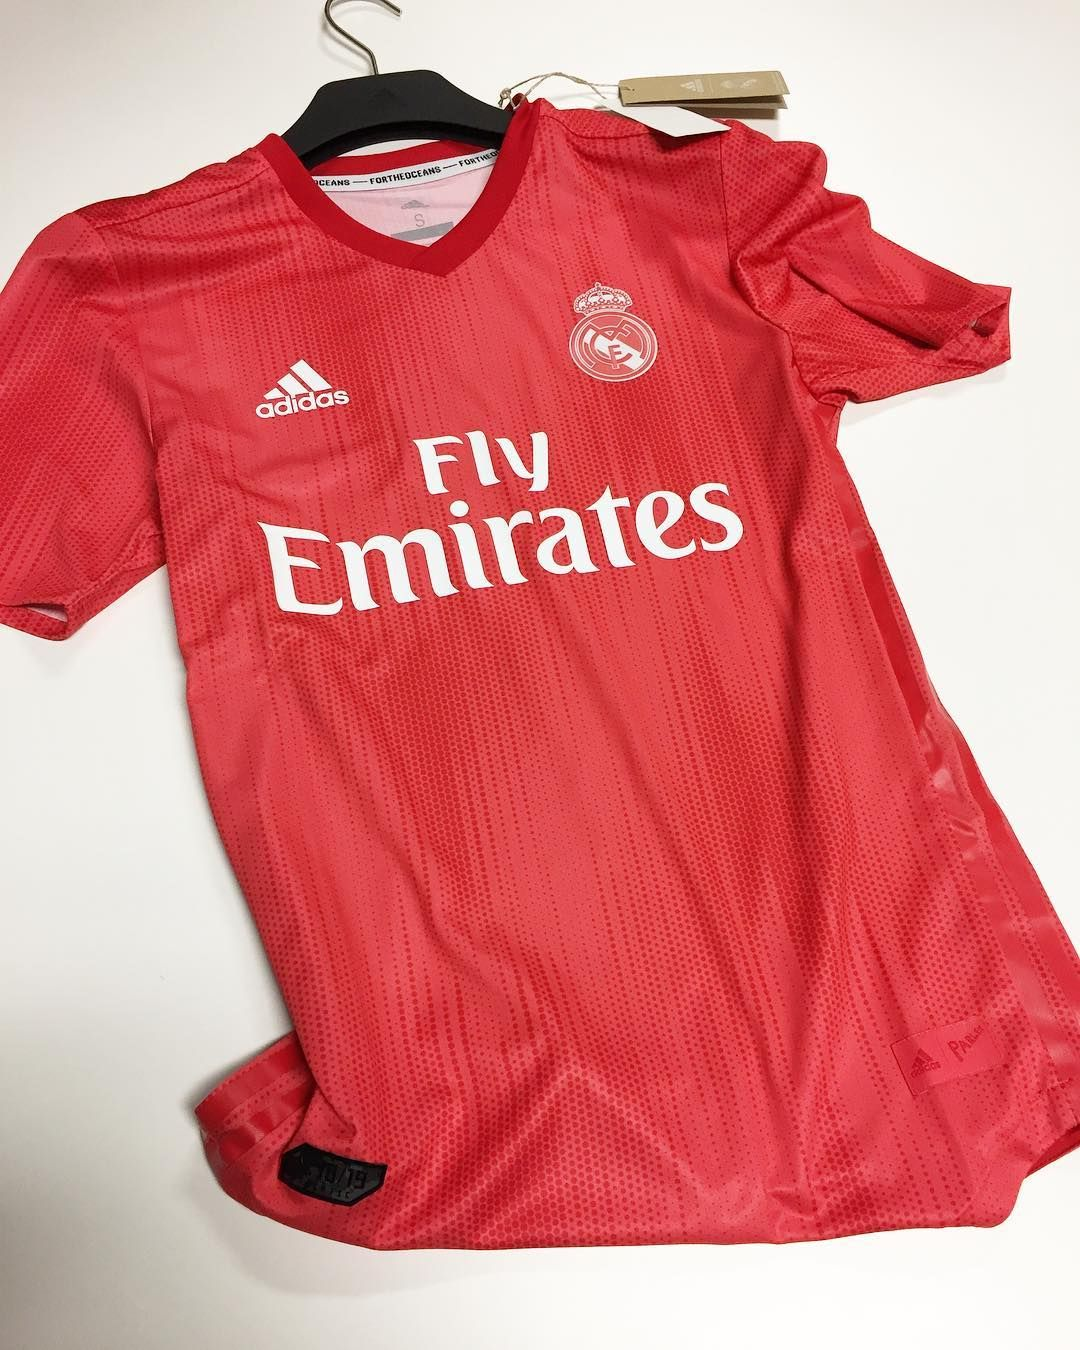 a4f80a741 Made from Parley ocean plastic. The 2018 19 adidas Real Madrid 3rd ...